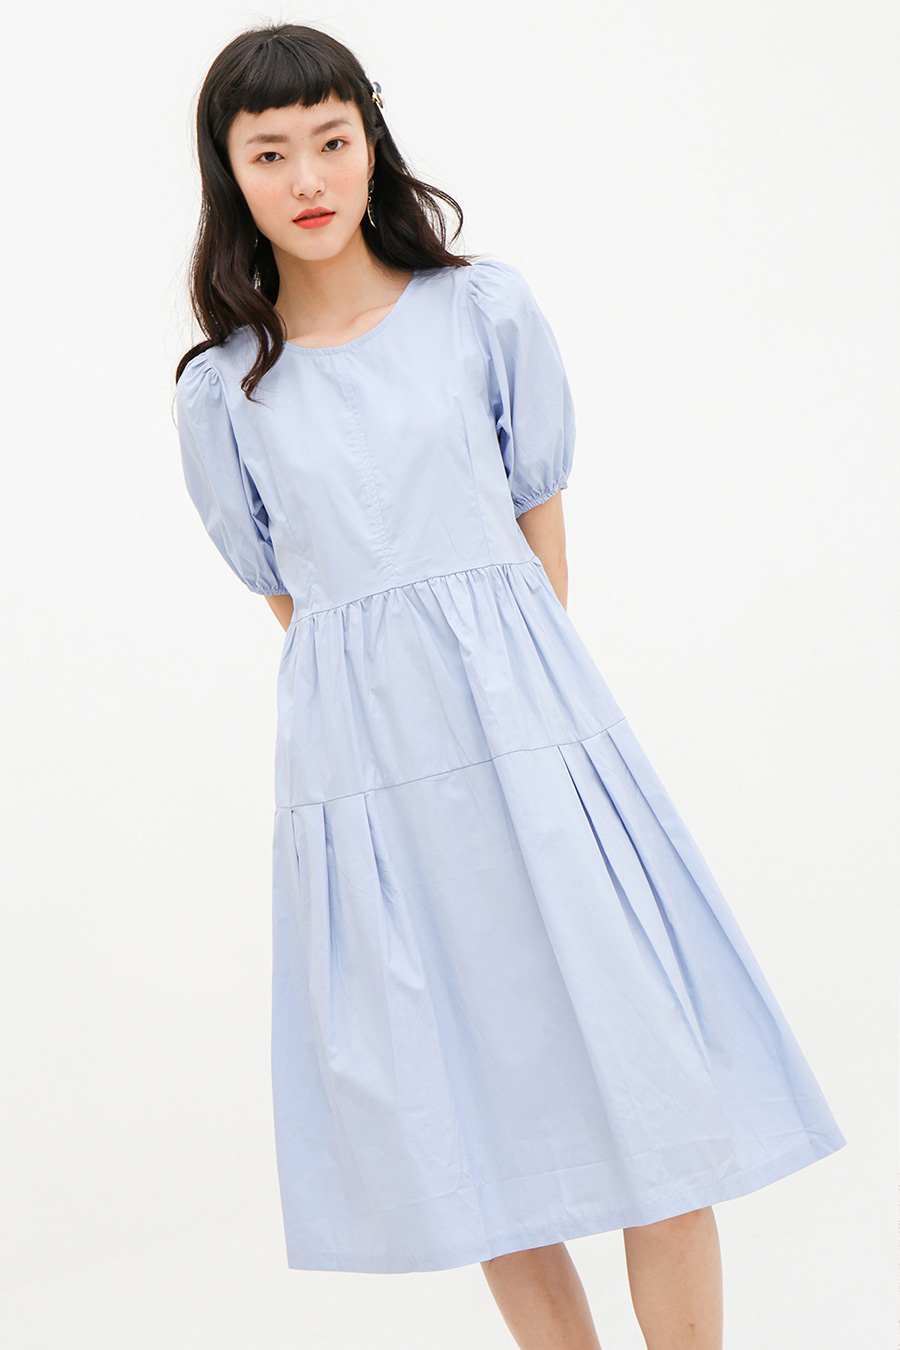 ADELIE DRESS - PERRY